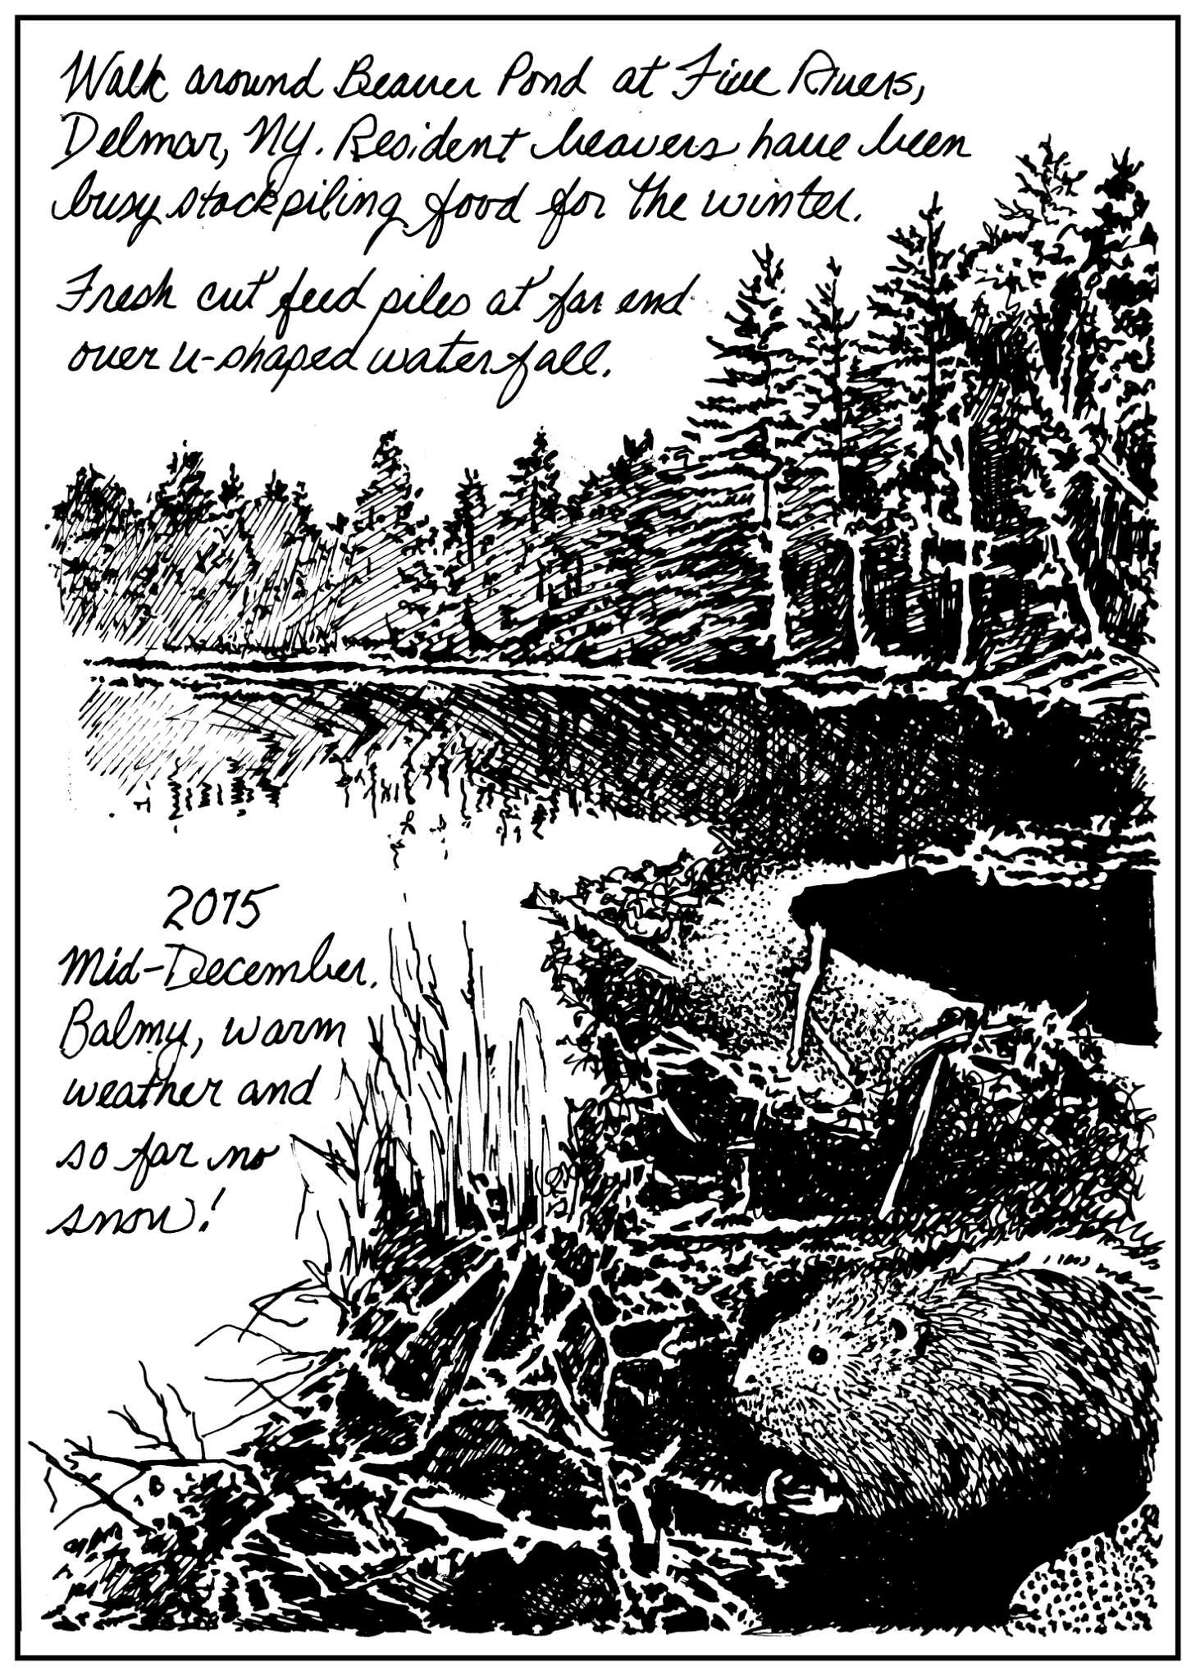 At this time of year, the best known tree cutting and dam building activities of North American beaver's (Castor canadensis) have subsided. Since late autumn, they've instead been busily preparing a feed pile, anchoring branches along the water's edge by ramming them into the muddy bottom of the pond, then gathering and storing twigs, sticks and bark within. (Carol Coogan)